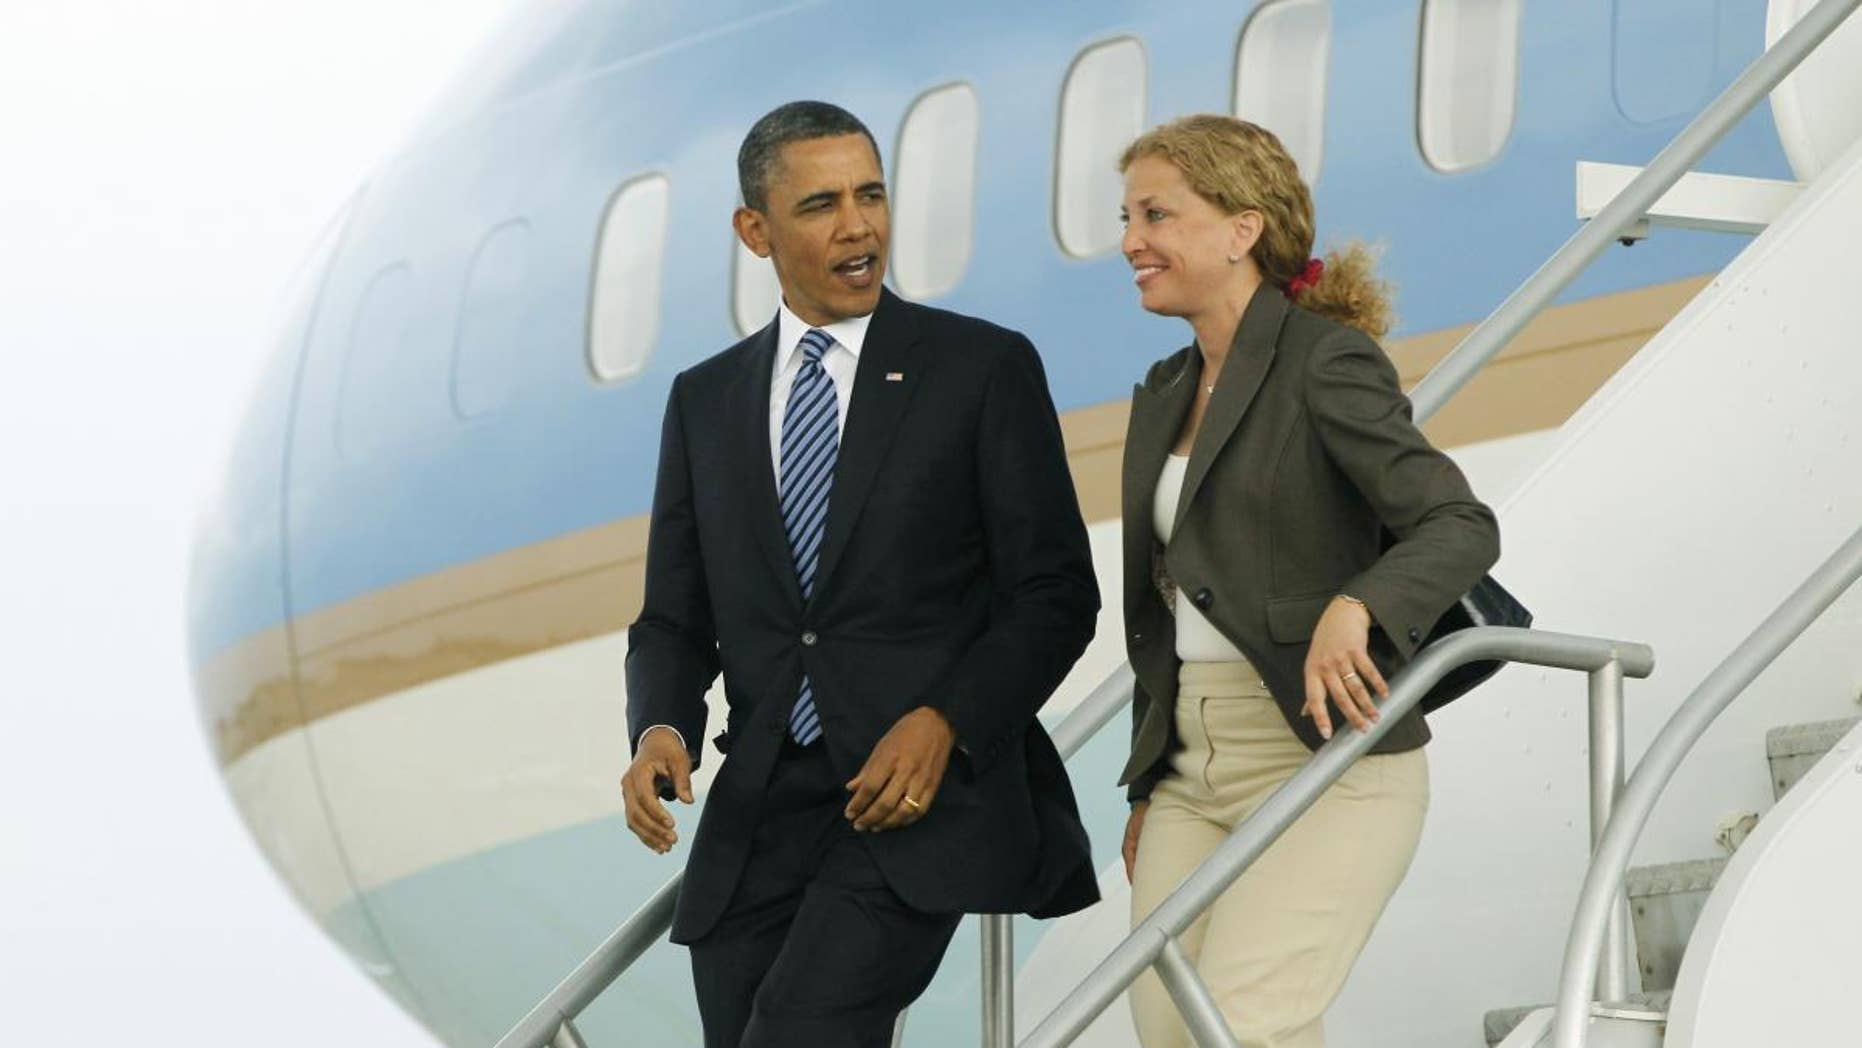 President Barack Obama and Democratic National Committee Chair, Rep. Debbie Wasserman Schultz, D-Fla. step off Air Force One in Miami, Friday, April 29, 2011. (AP Photo/Charles Dharapak)